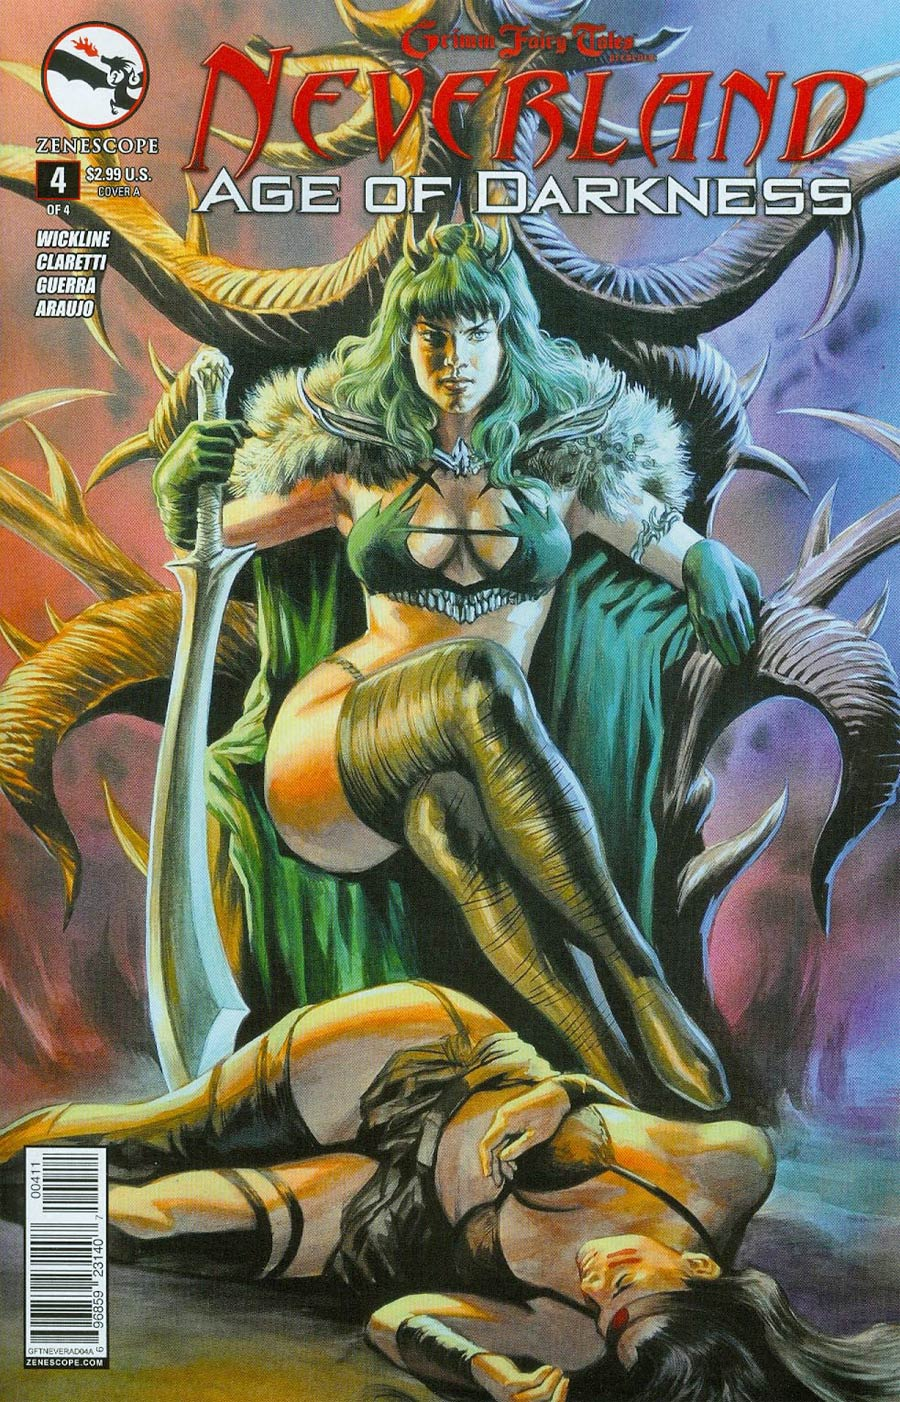 Grimm Fairy Tales Presents Neverland Age Of Darkness #4 Cover A Felipe Massafera